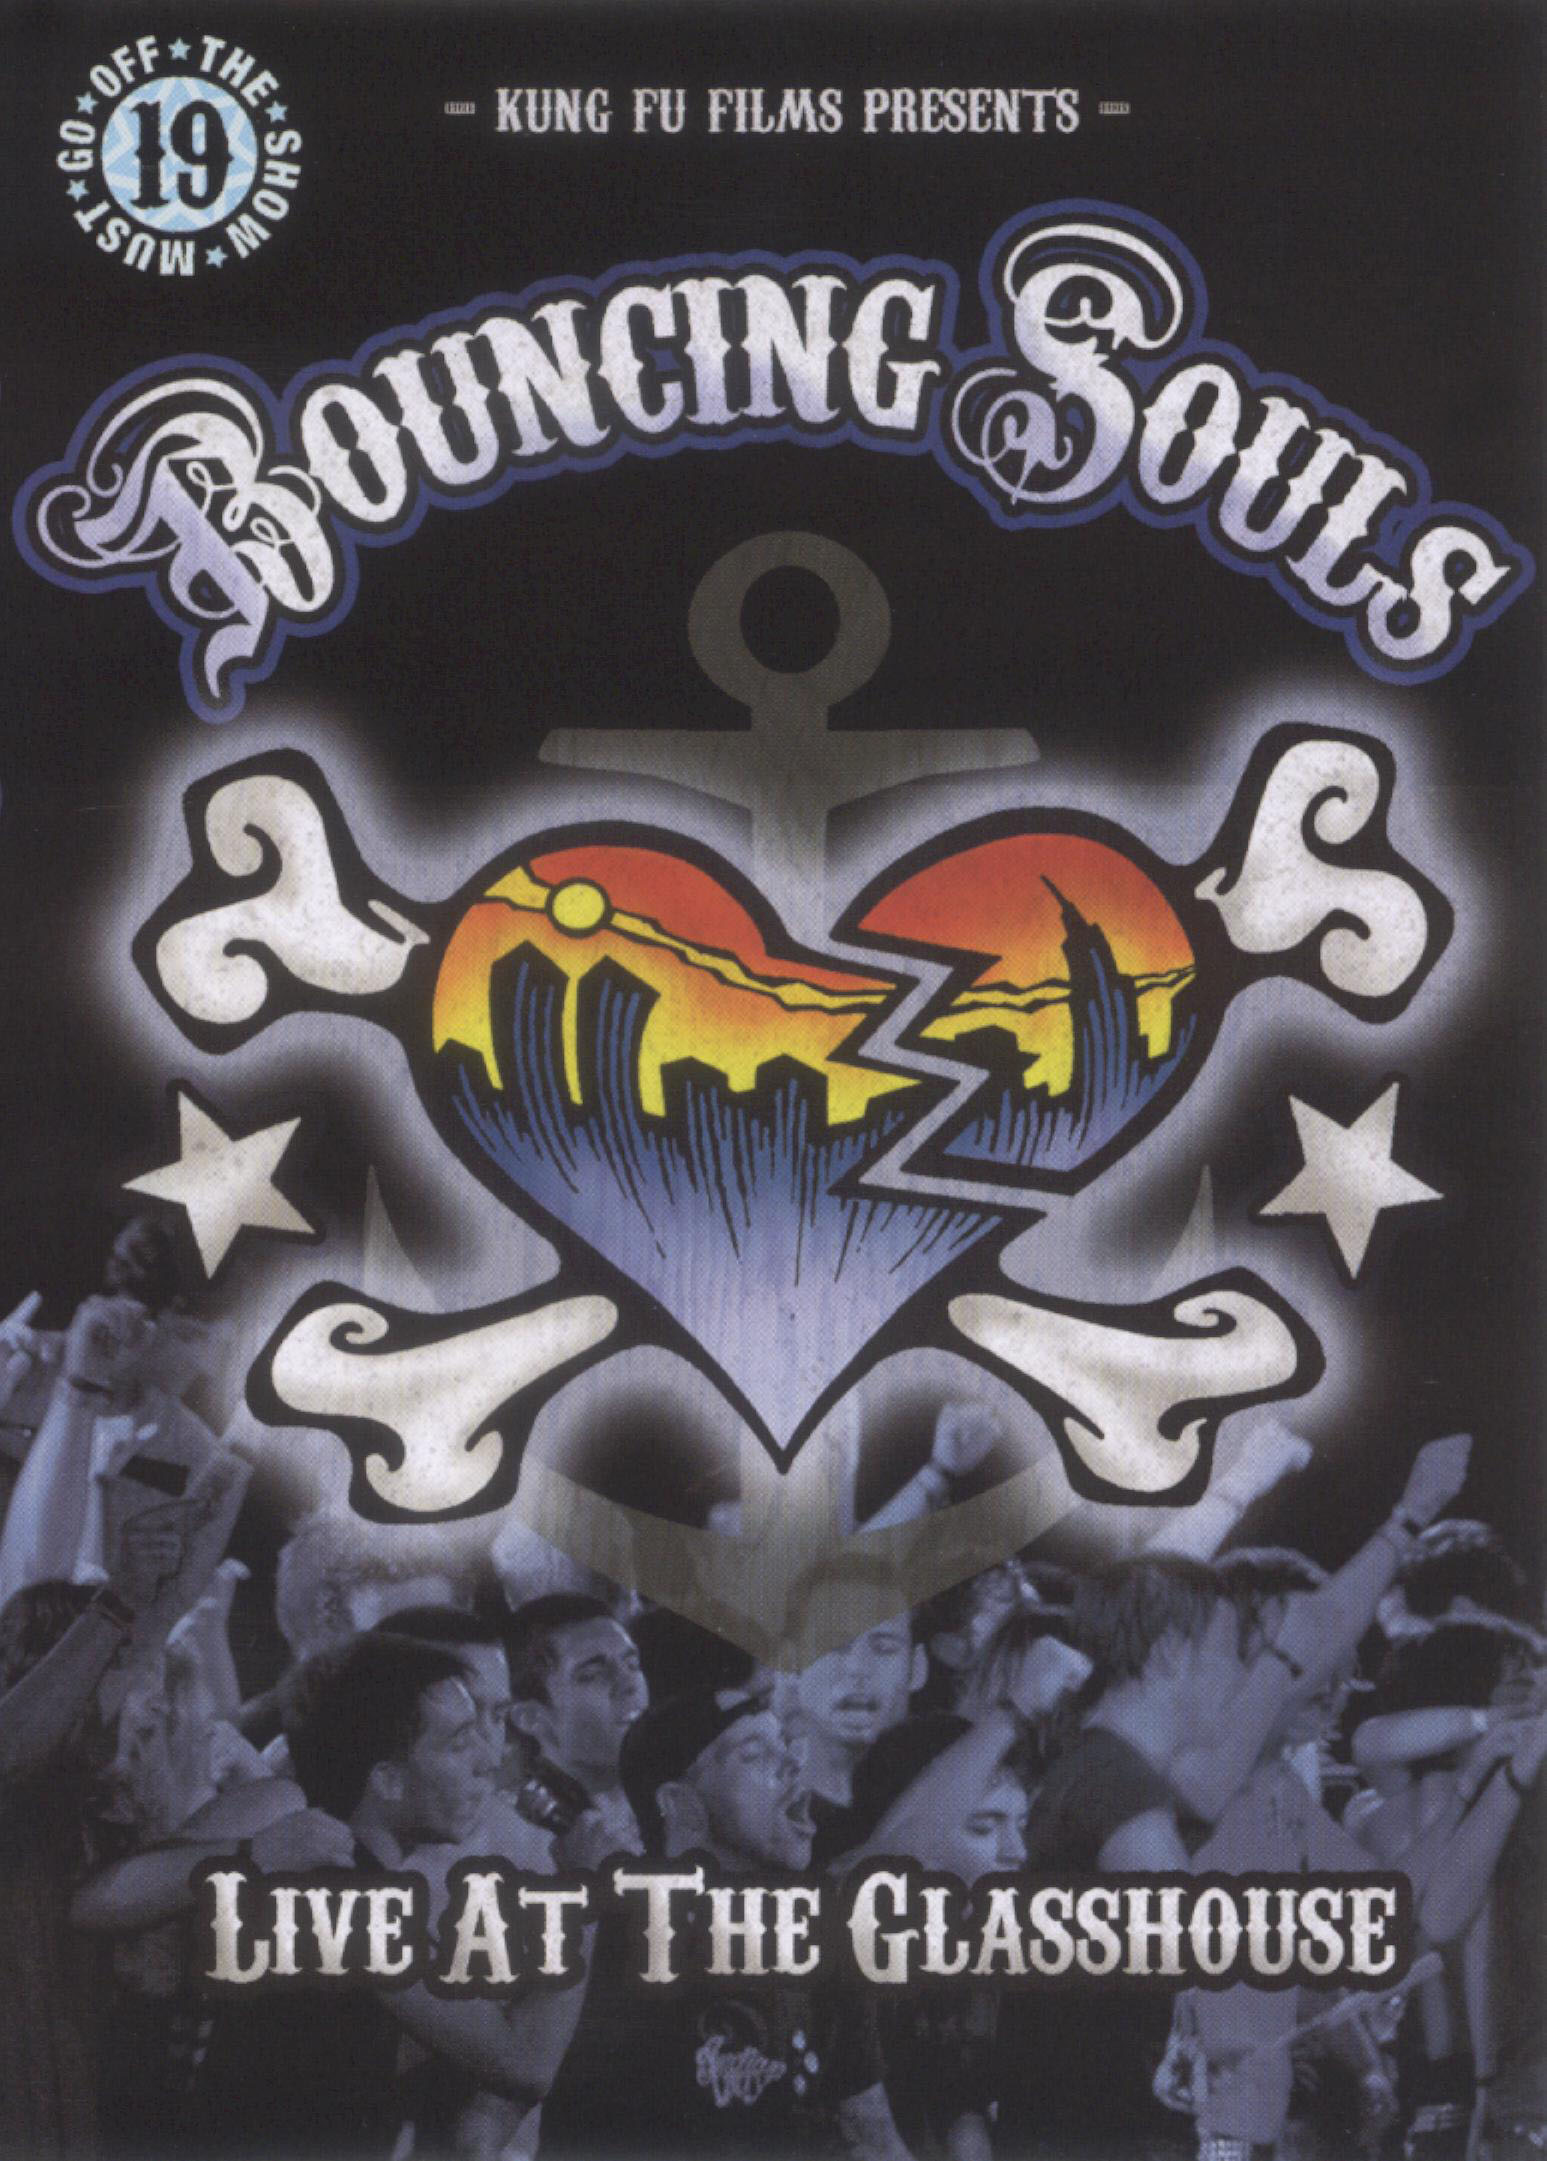 The Bouncing Souls: Live at the Glasshouse